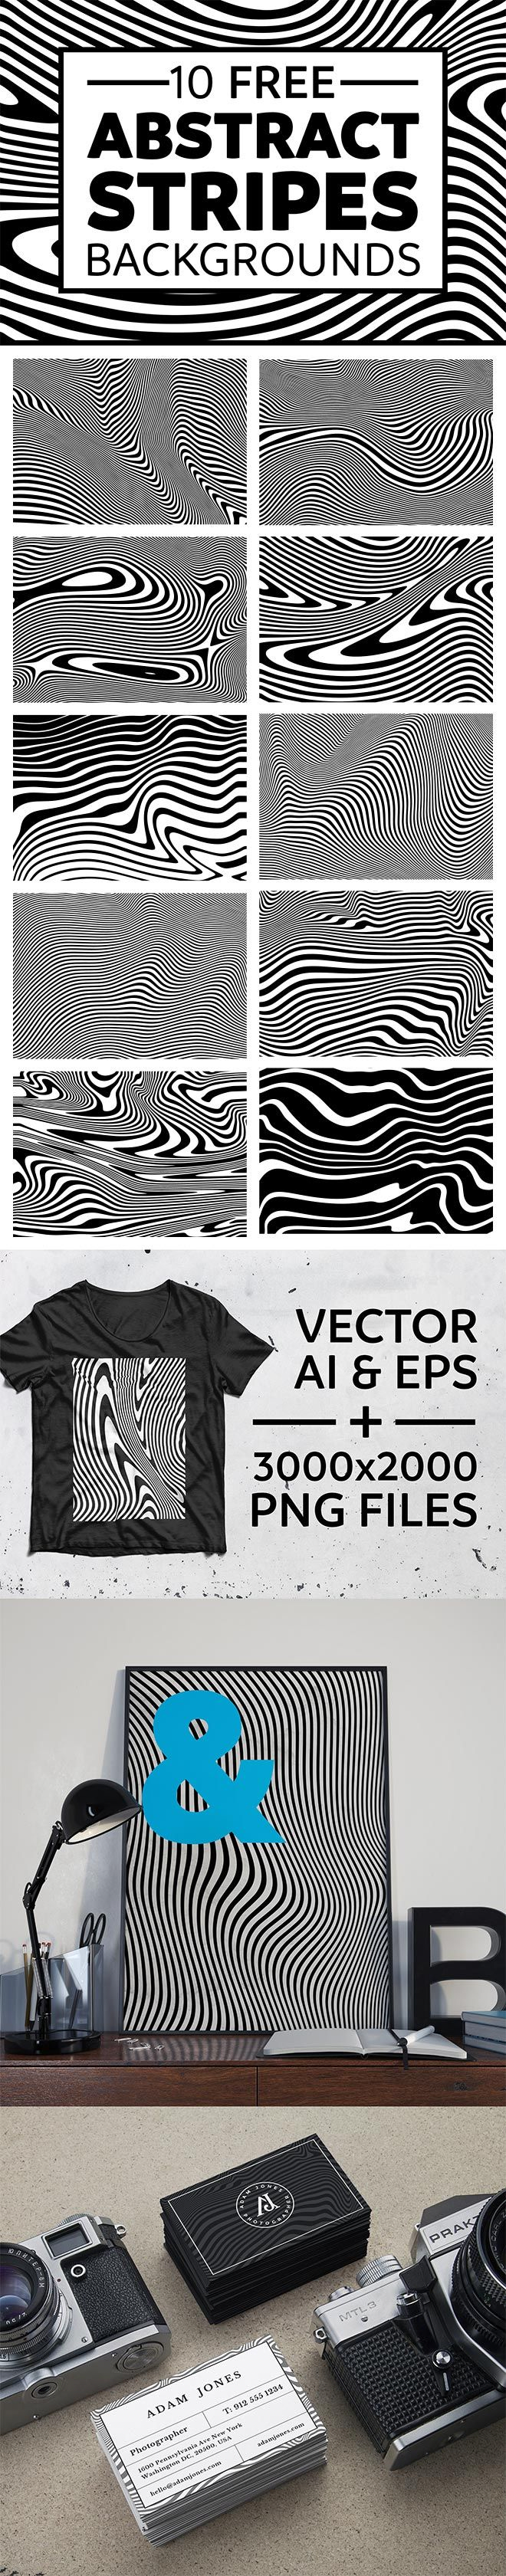 free abstract stripes backgrounds with distorted lines also amazing rh pinterest